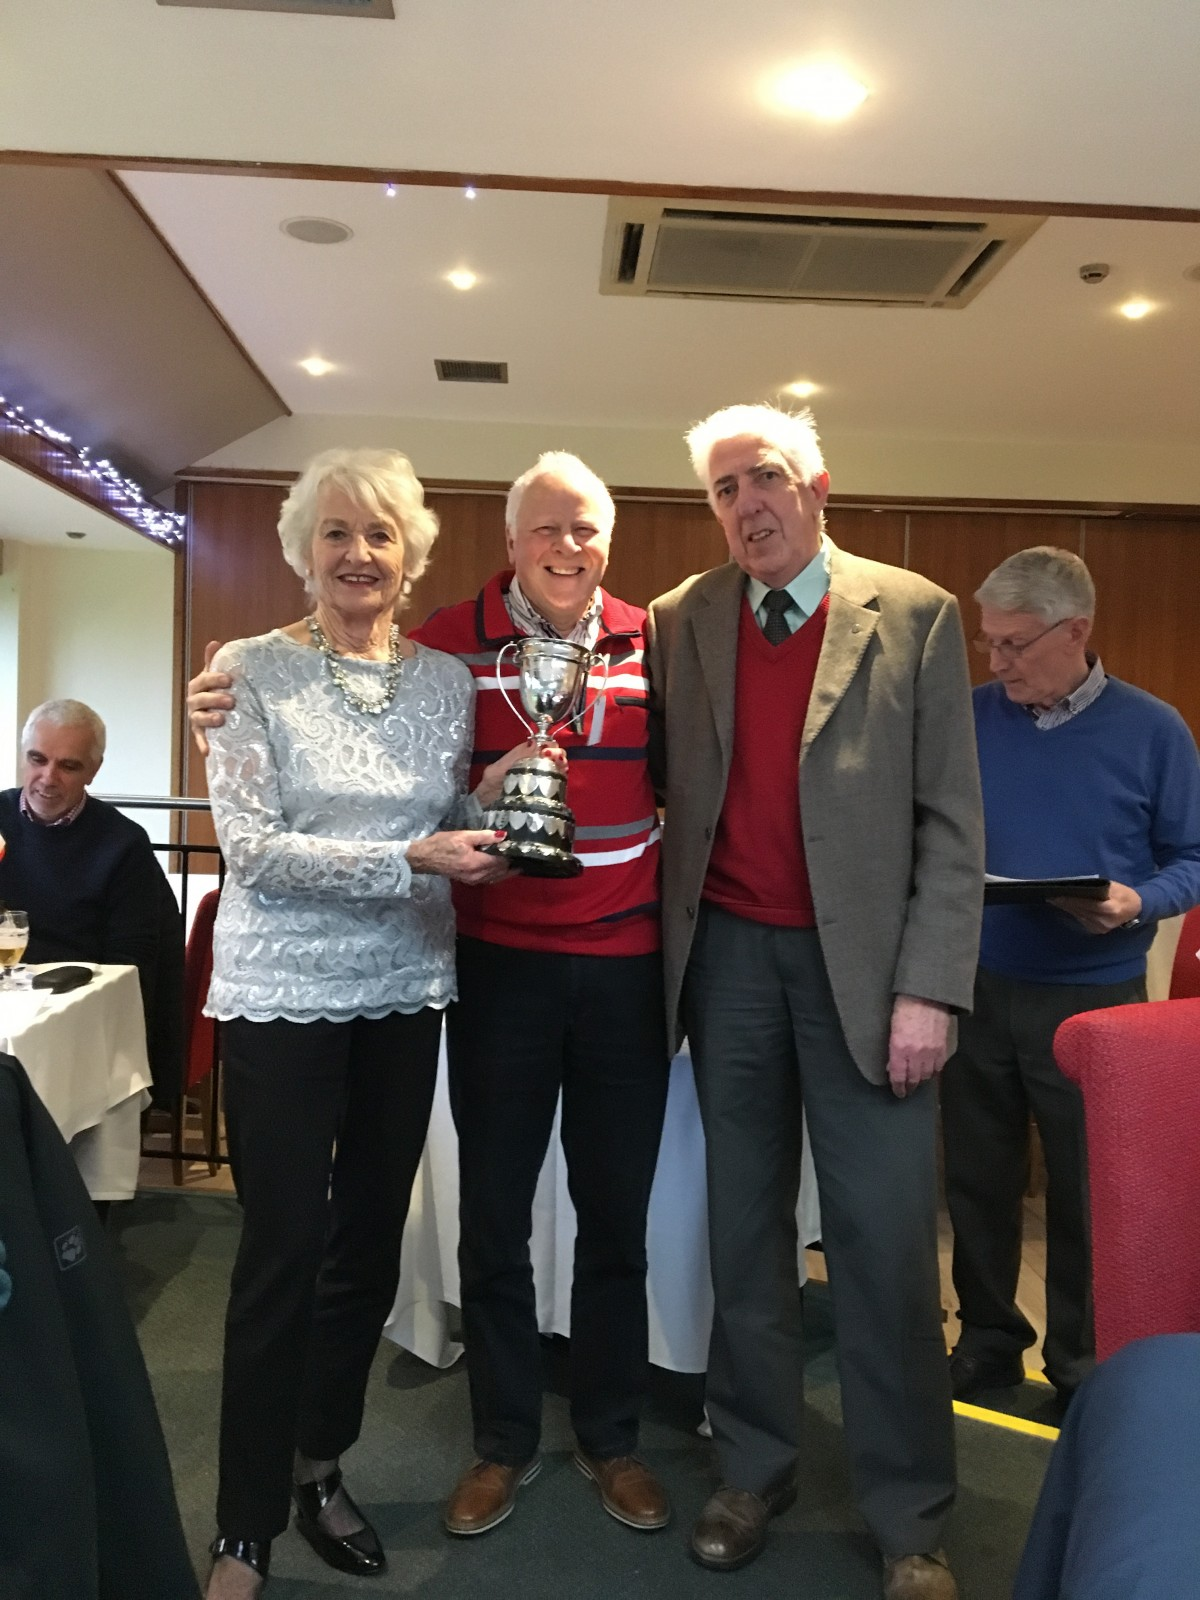 Annual Prize Giving for Indoor Mixed Bowls